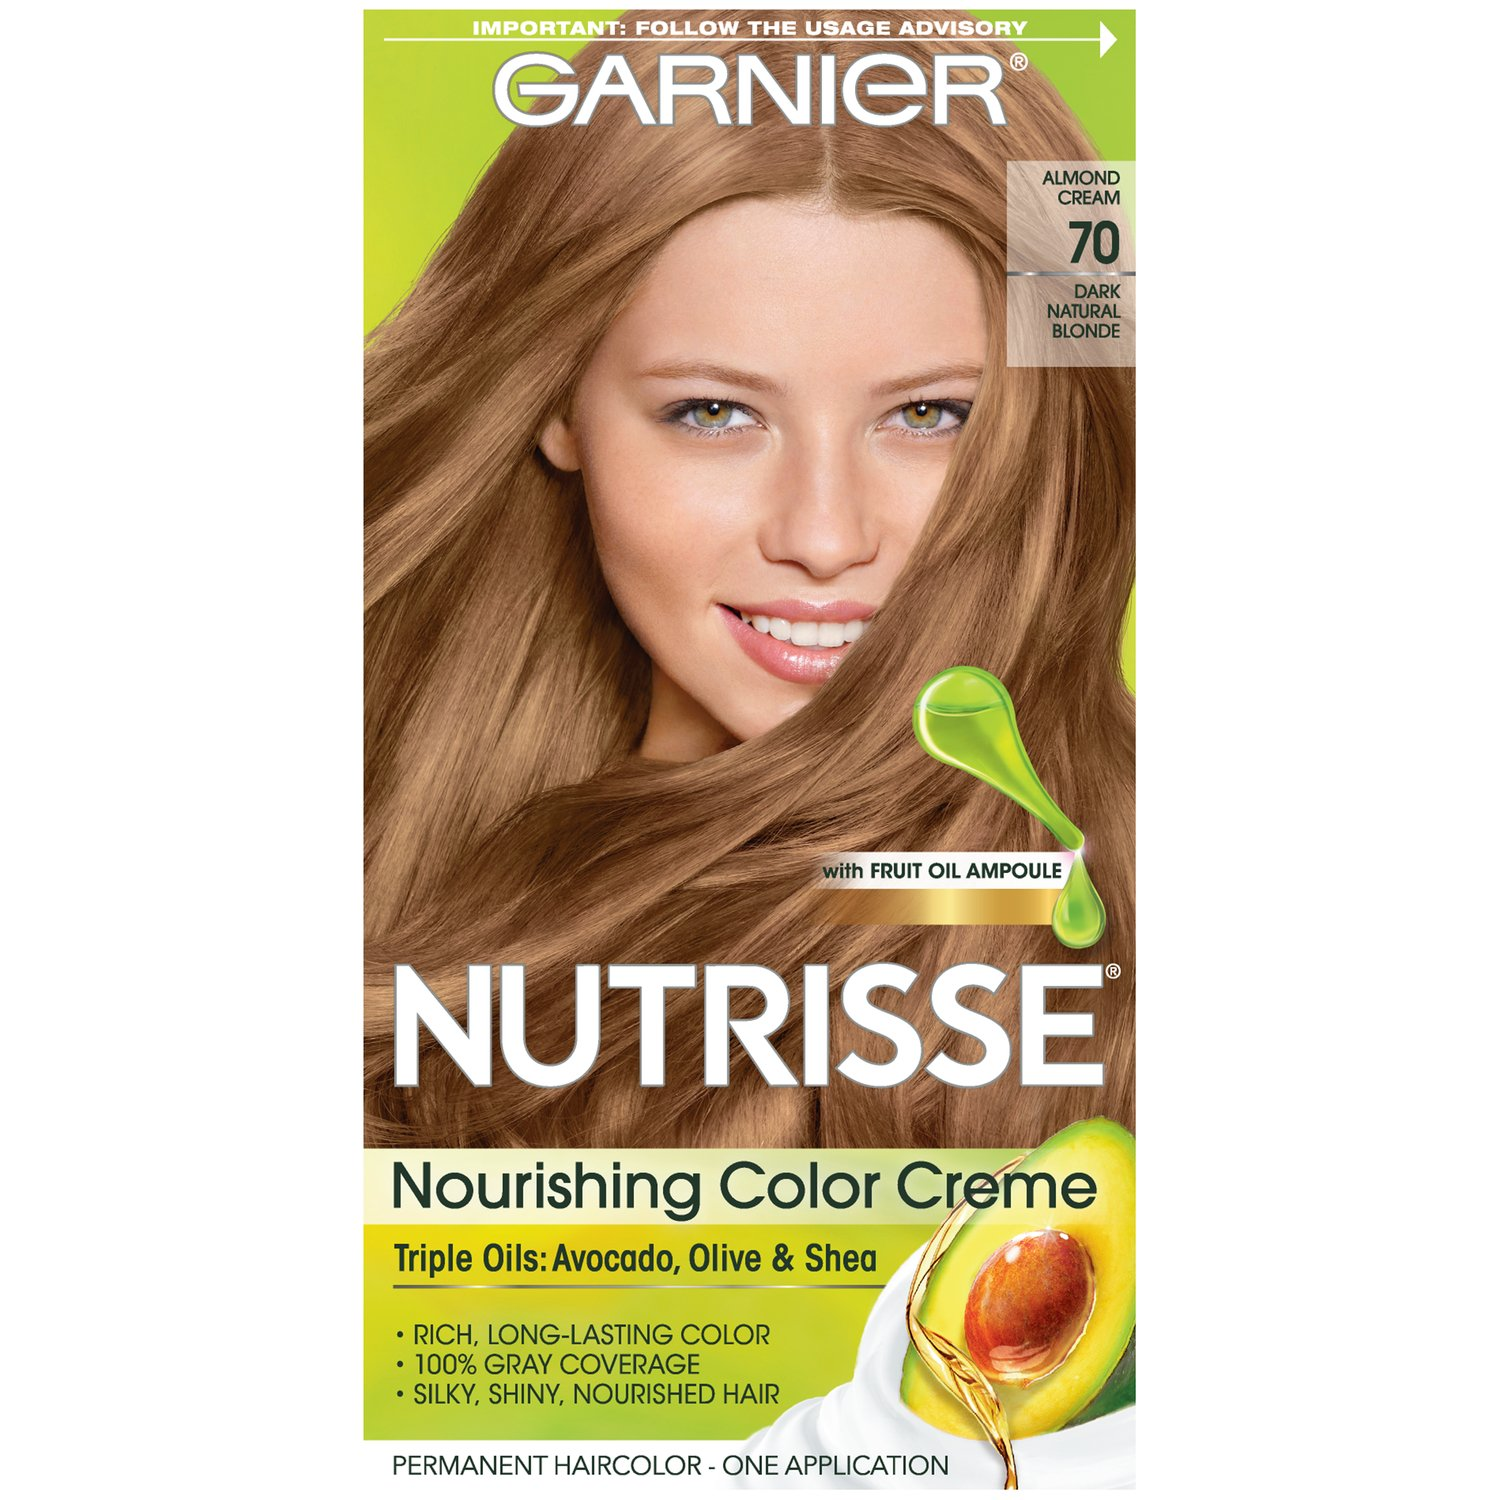 Garnier Nutrisse Nourishing Hair Color Creme, 70 Dark Natural Blonde (Almond Creme) (Packaging May Vary)